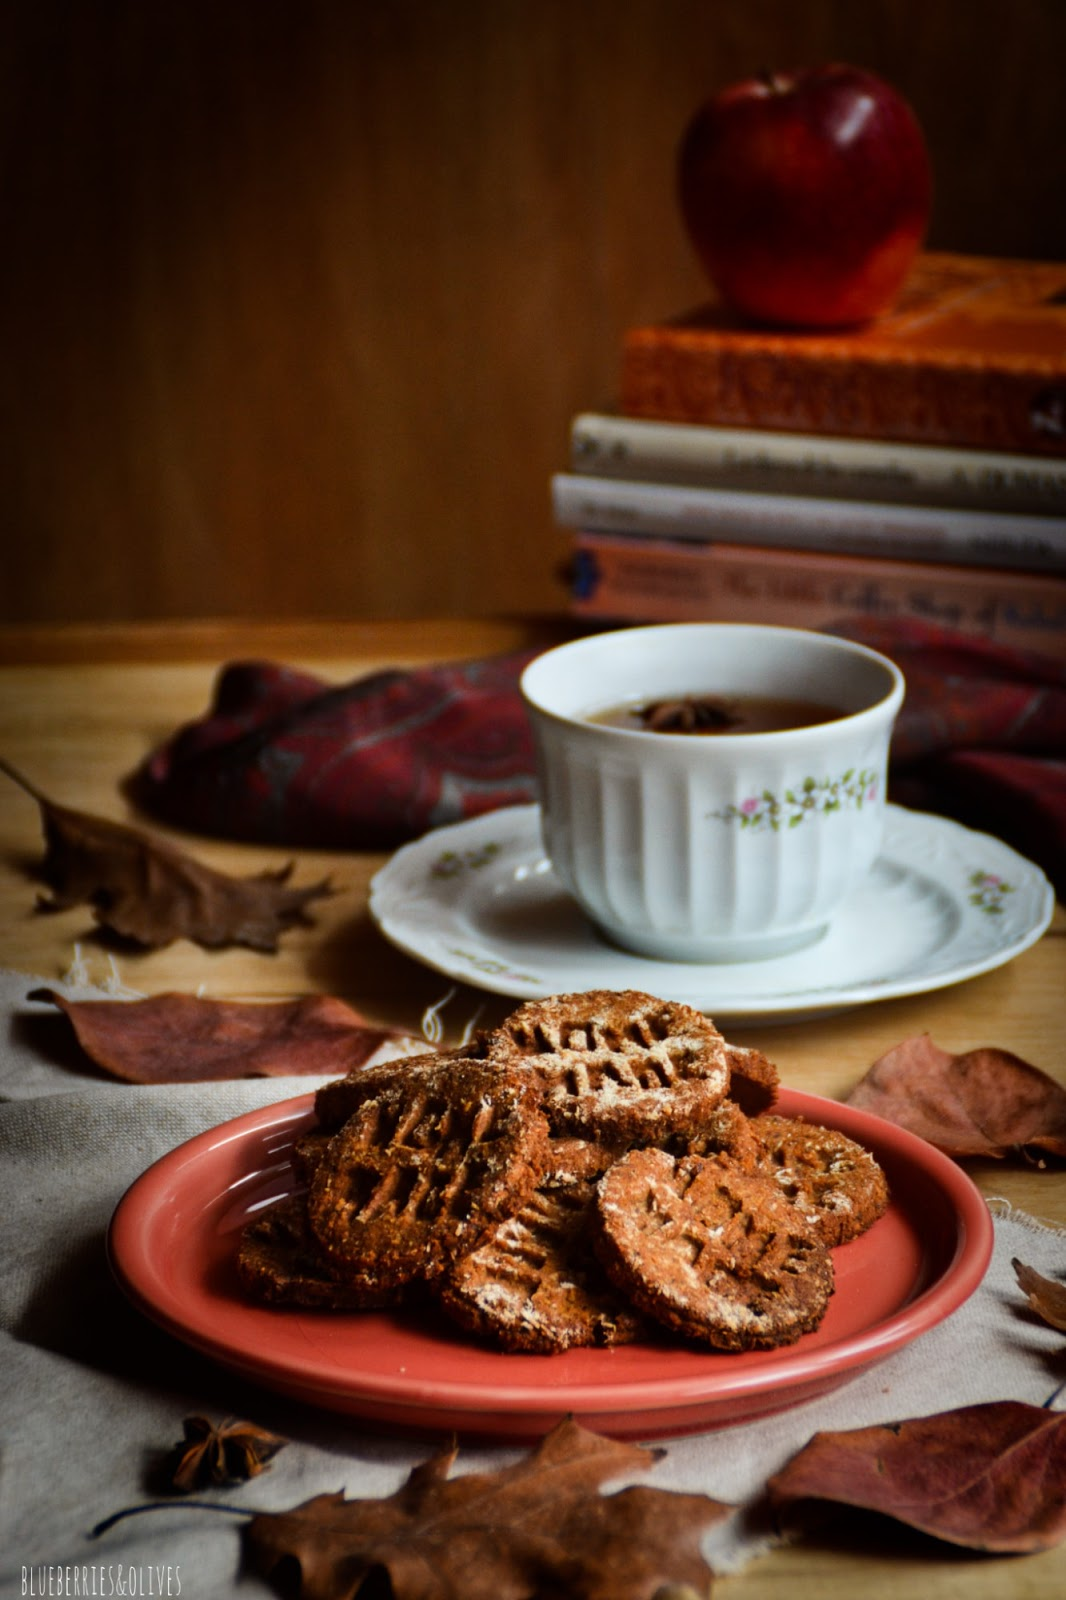 Piled cookies on red ceramic dish, dry autumn leaves, dark background, old wood, piles books with red apple on top